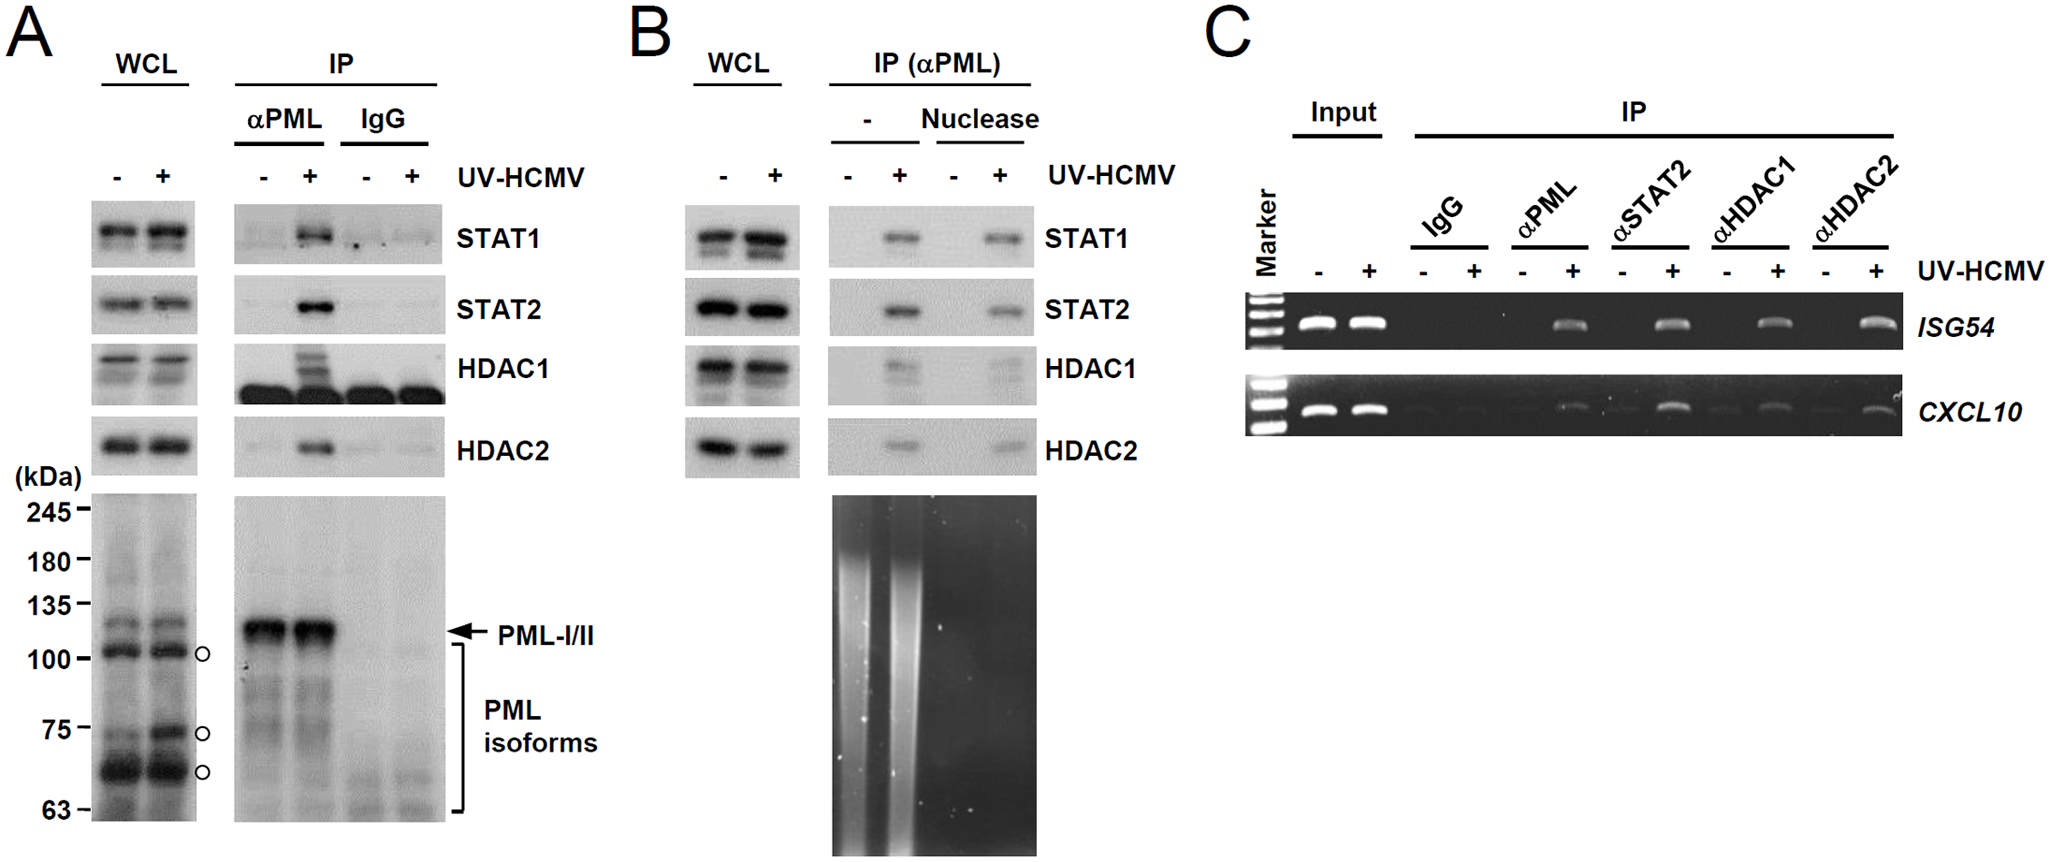 Association of PML with STAT1, STAT2, and HDAC1 on ISG54 and CXCL10 promoters after UV-HCMV infection.